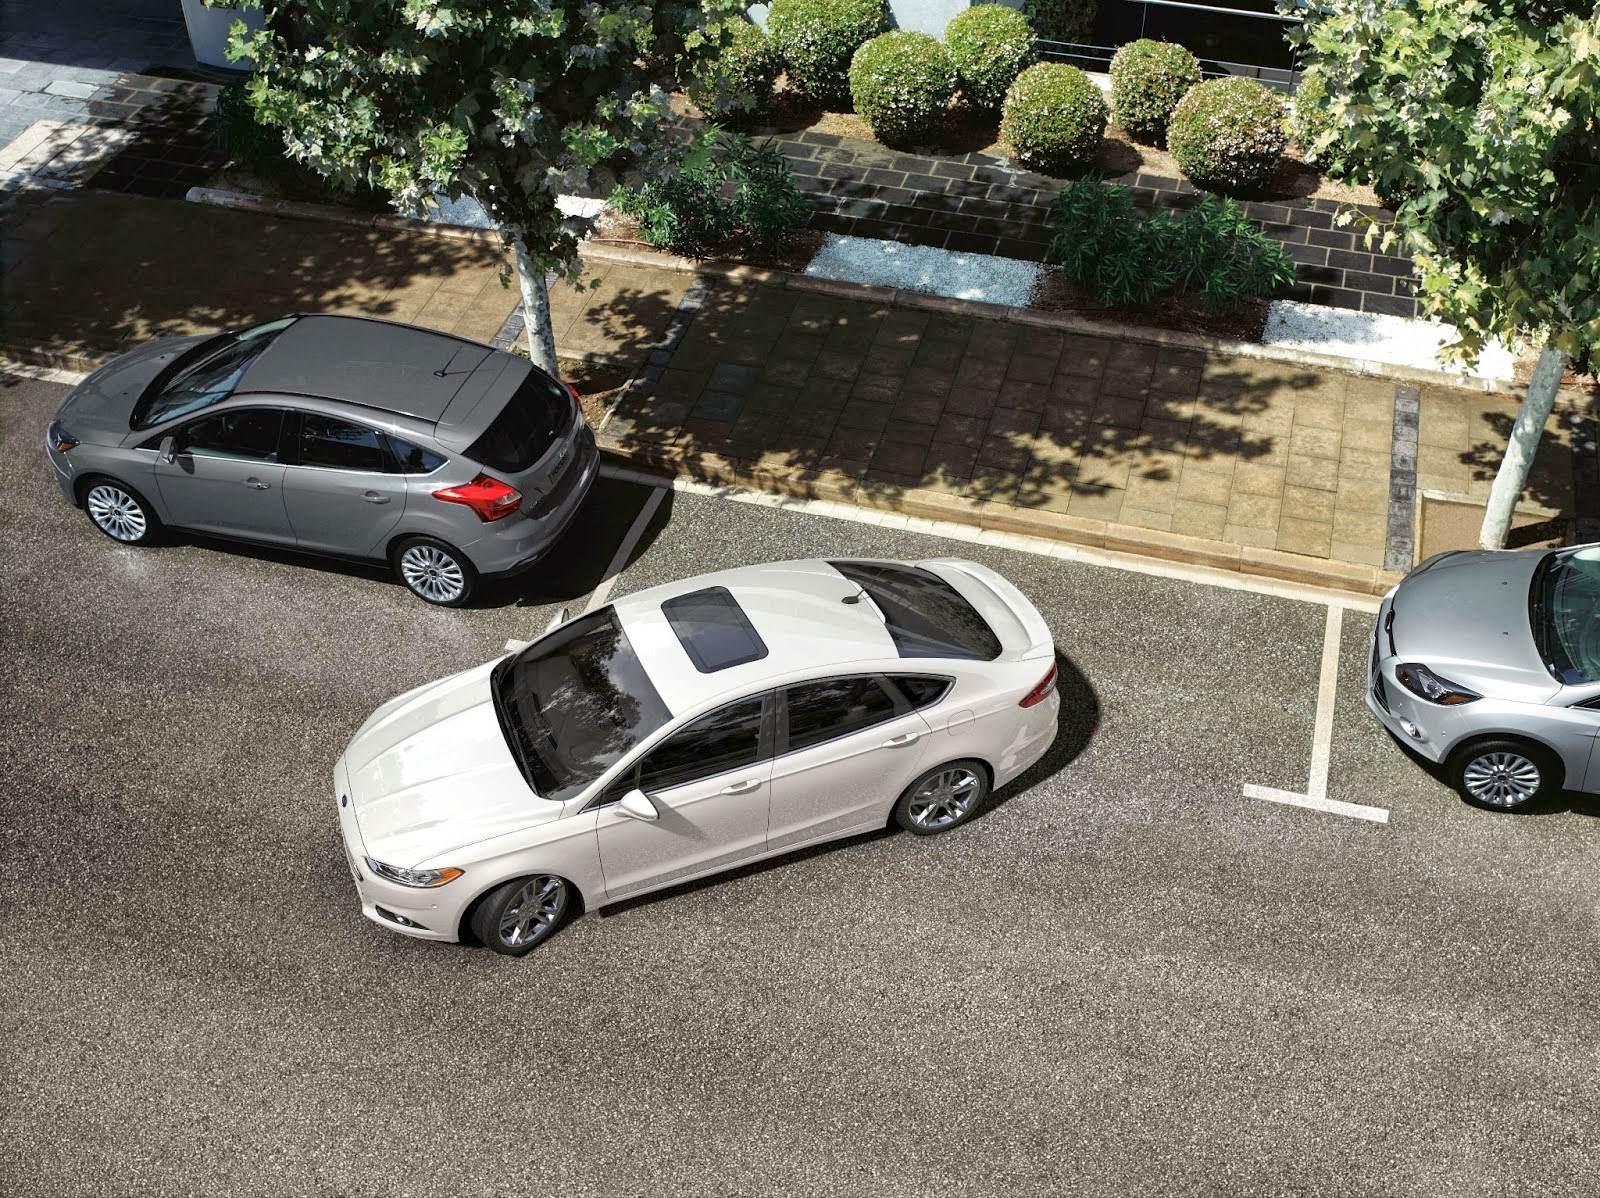 brighton ford ford experiments with driverless car parking. Black Bedroom Furniture Sets. Home Design Ideas